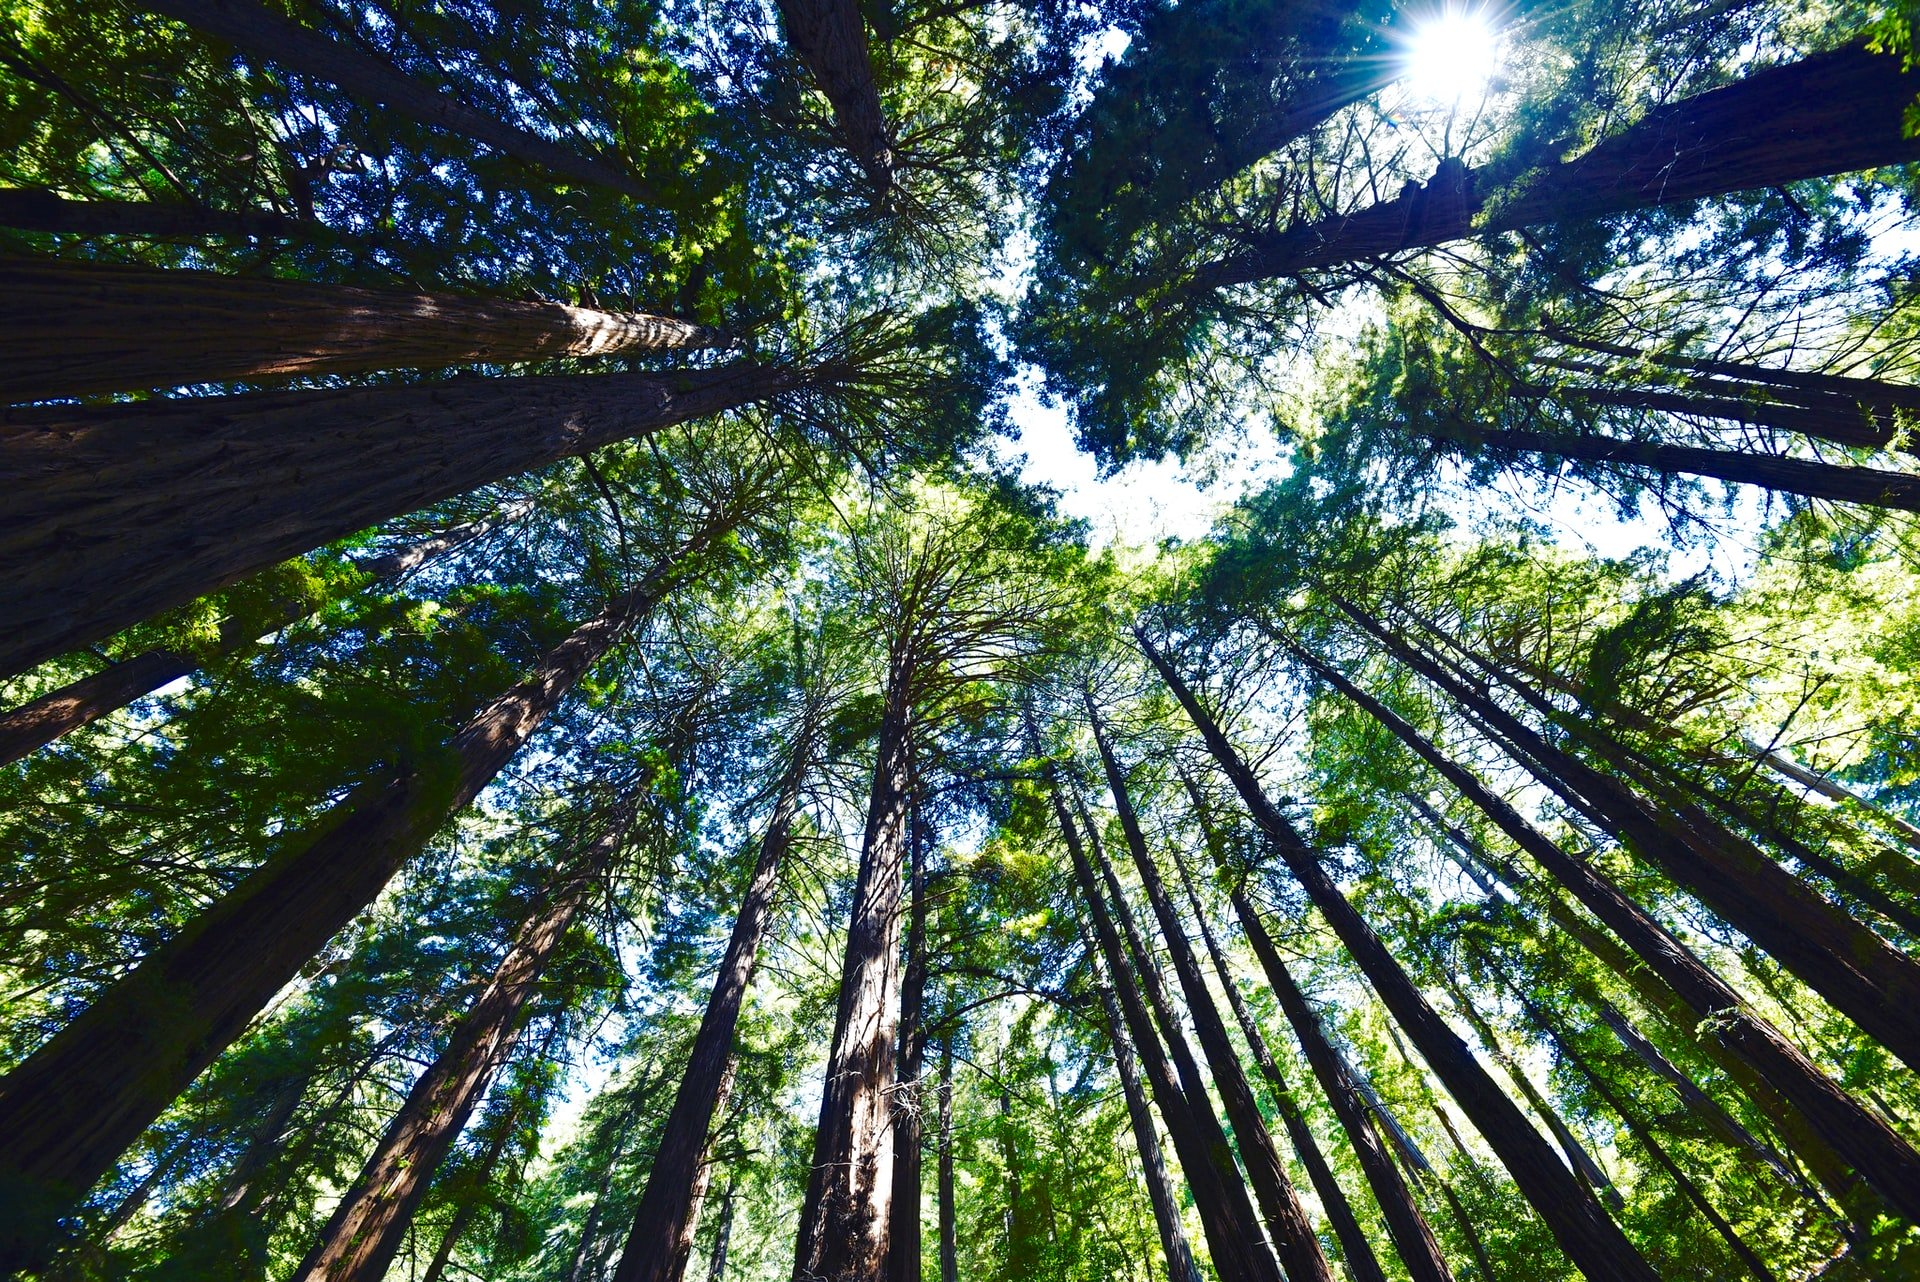 Looking upward at tall redwoods in Muir Woods